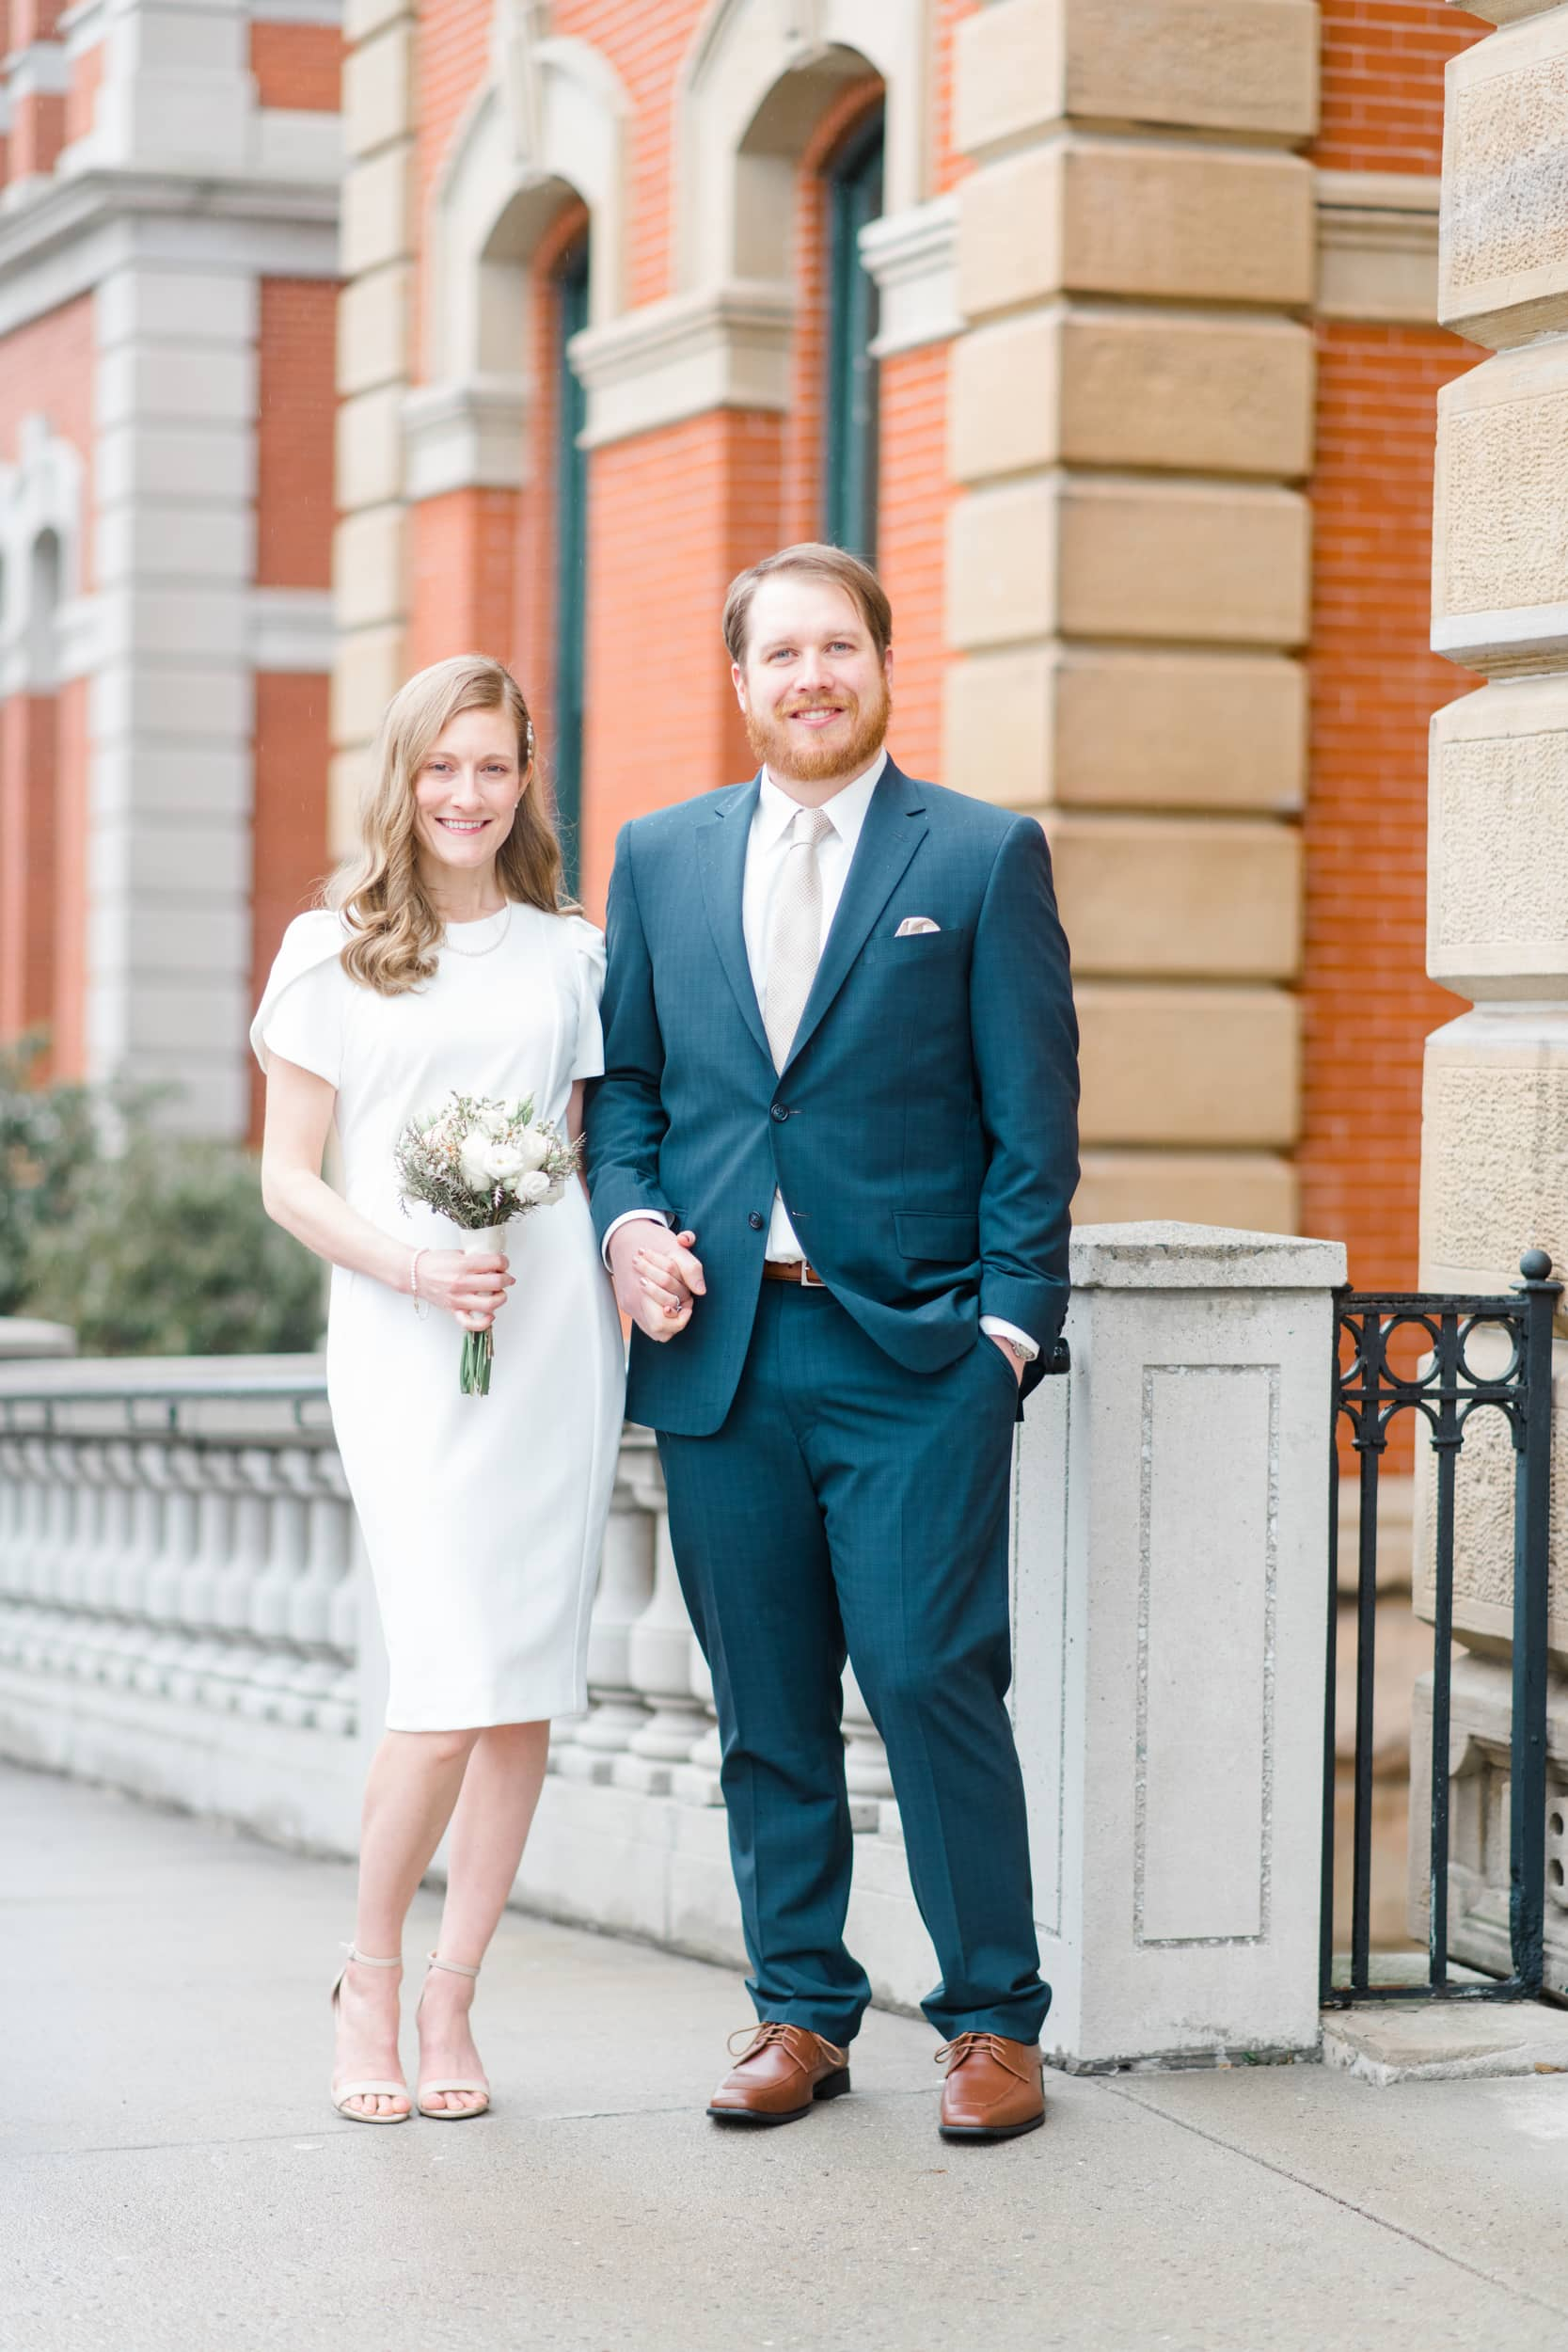 Hannah & Alex's Beautifully Intimate Wedding at the Cambria County Courthouse